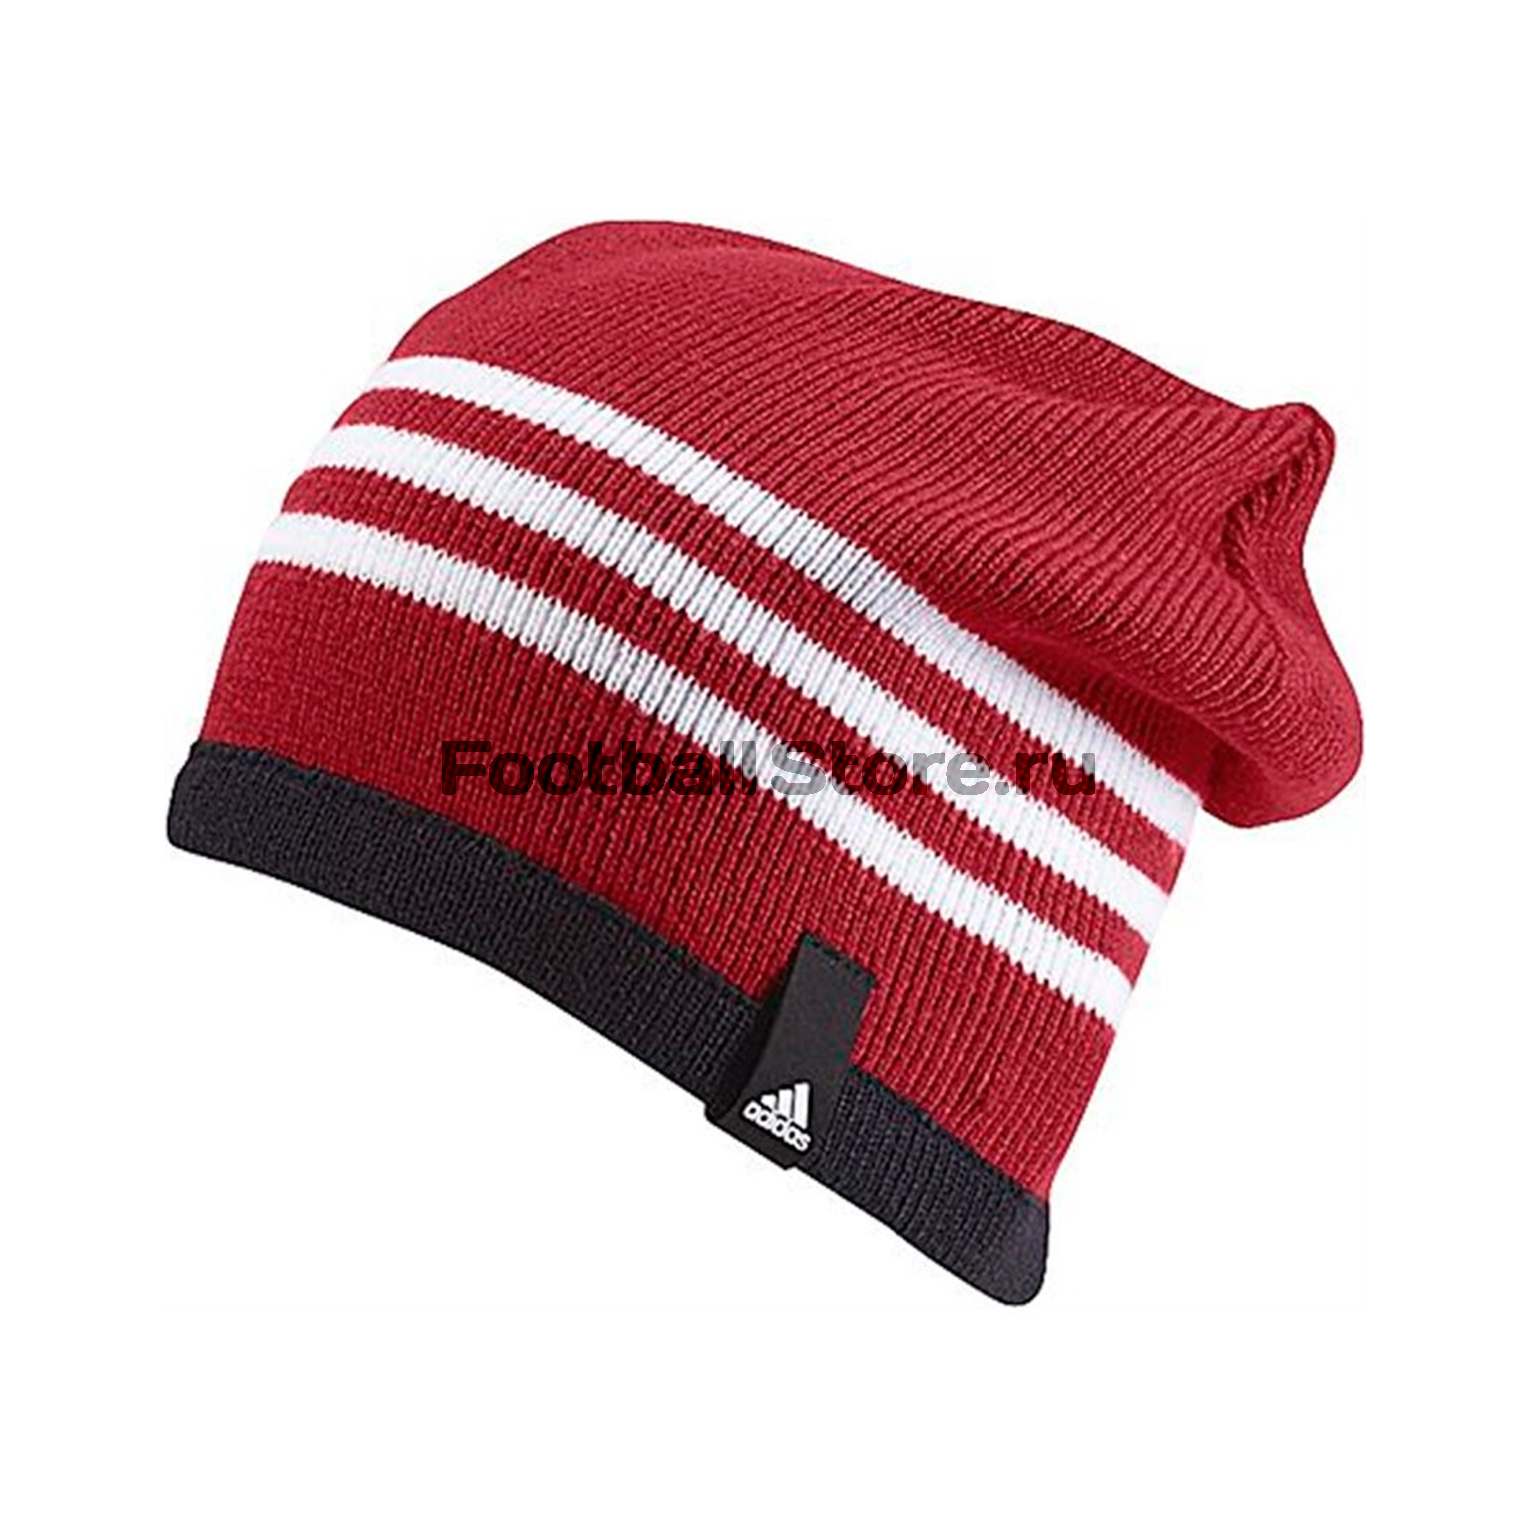 Шапка Adidas Tiro Cap S13319 рюкзак adidas tiro bp bs4761